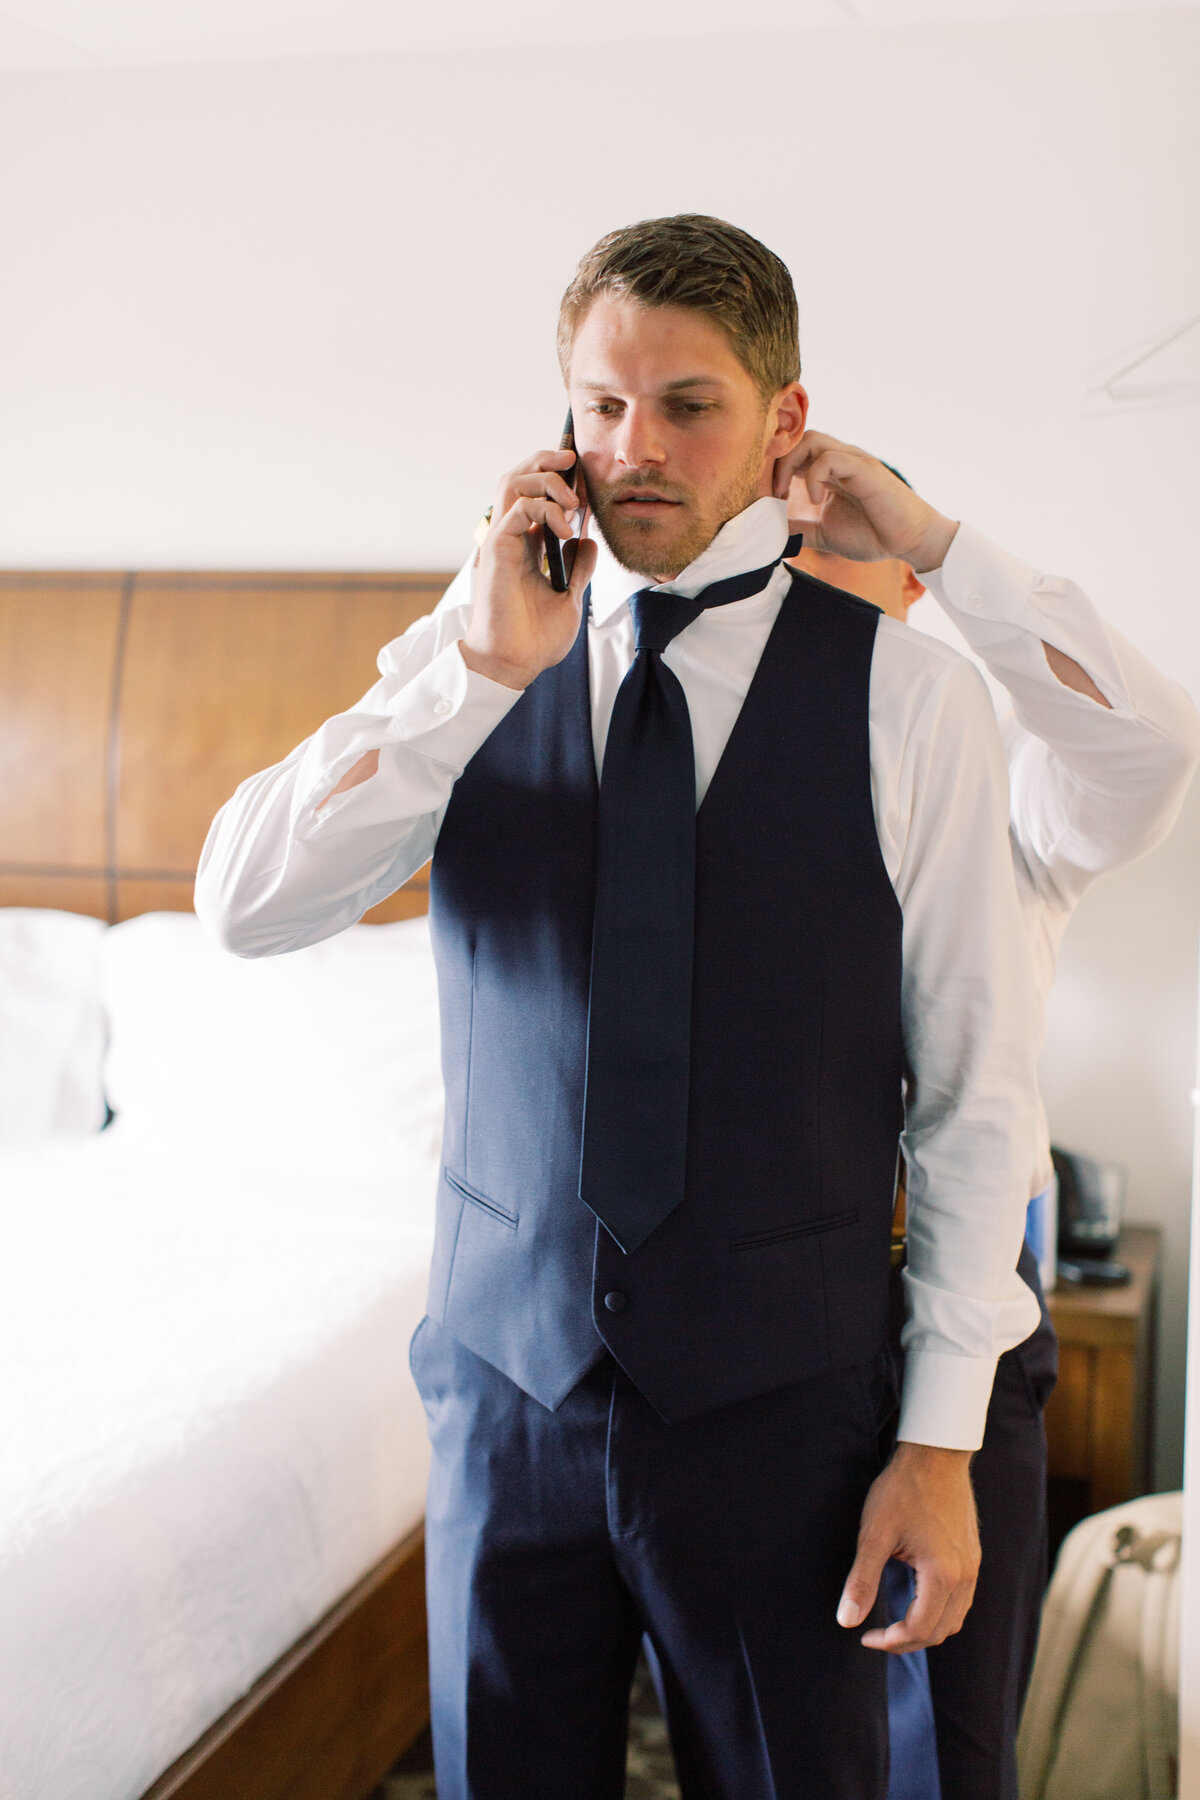 Melton_Wedding__Middleton_Place_Plantation_Charleston_South_Carolina_Jacksonville_Florida_Devon_Donnahoo_Photography__0172